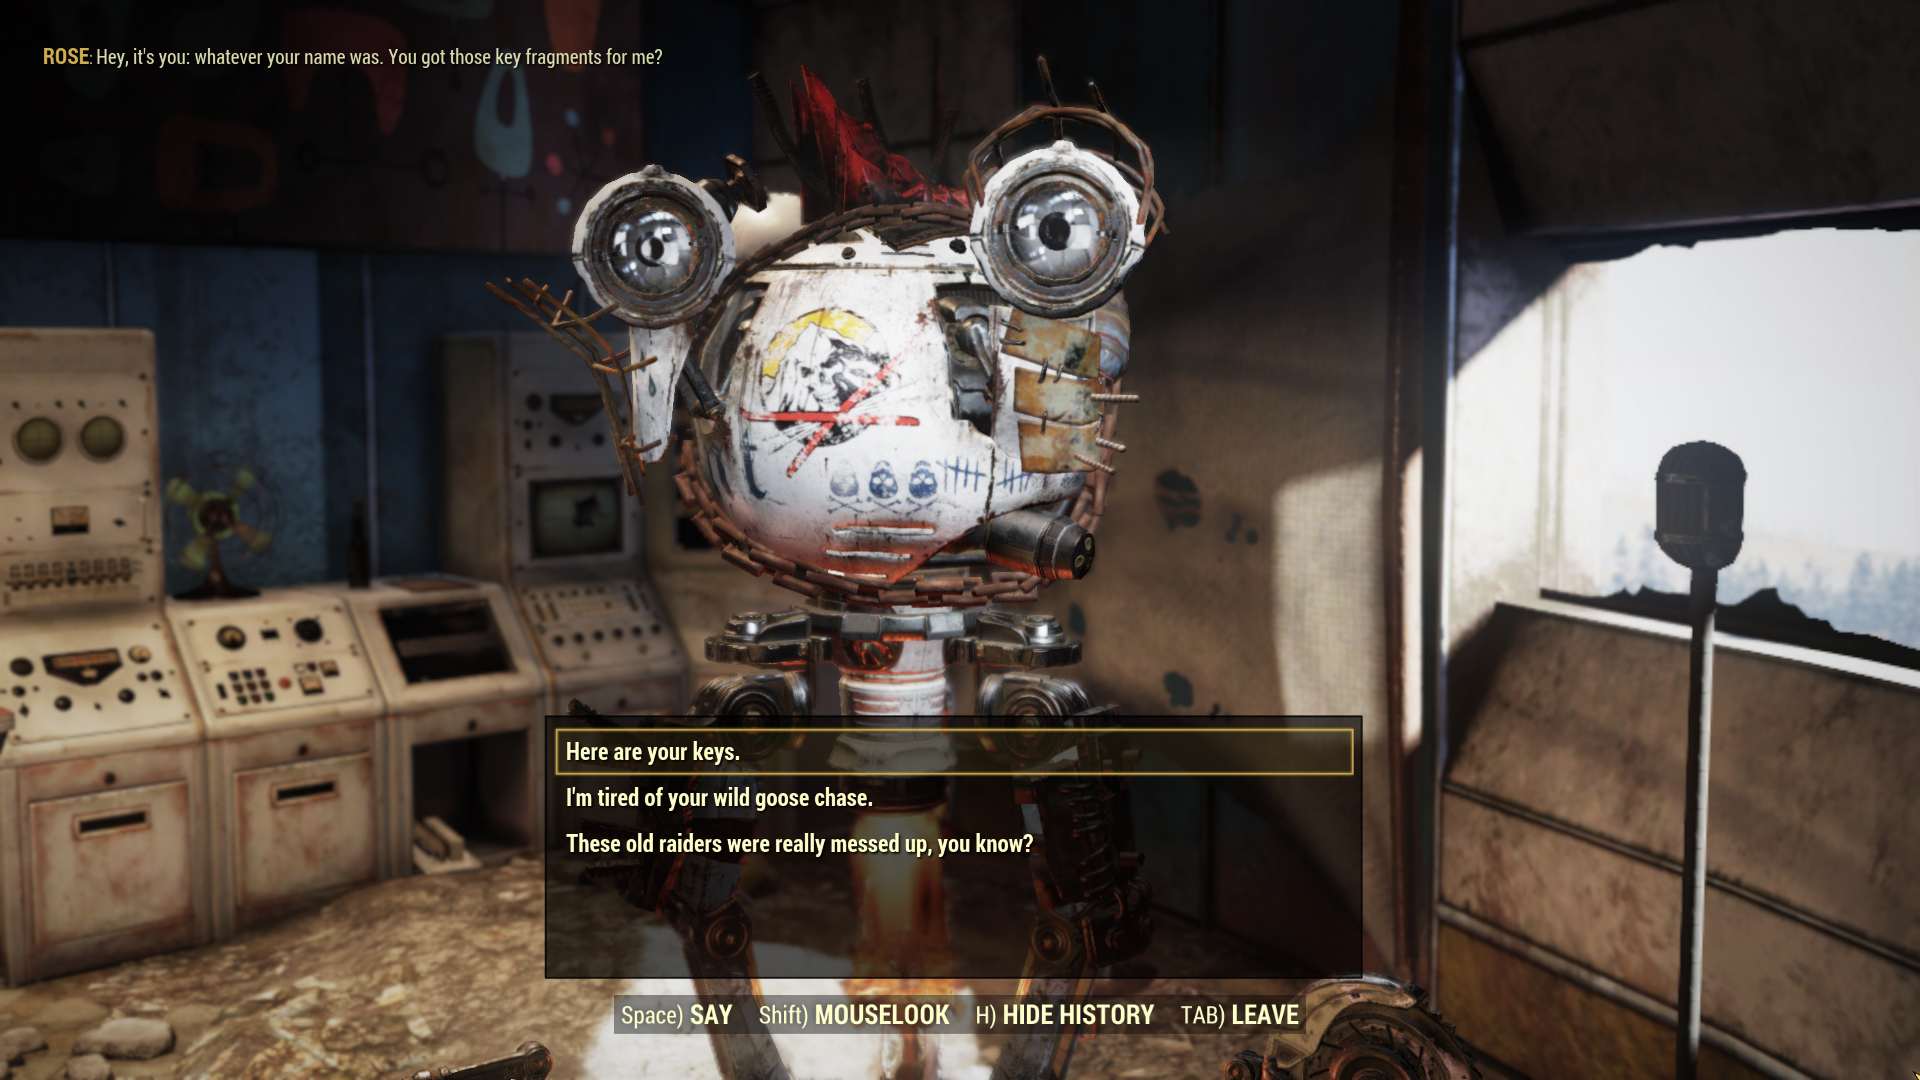 Here's how Fallout 76's new NPC dialogue system works screenshot